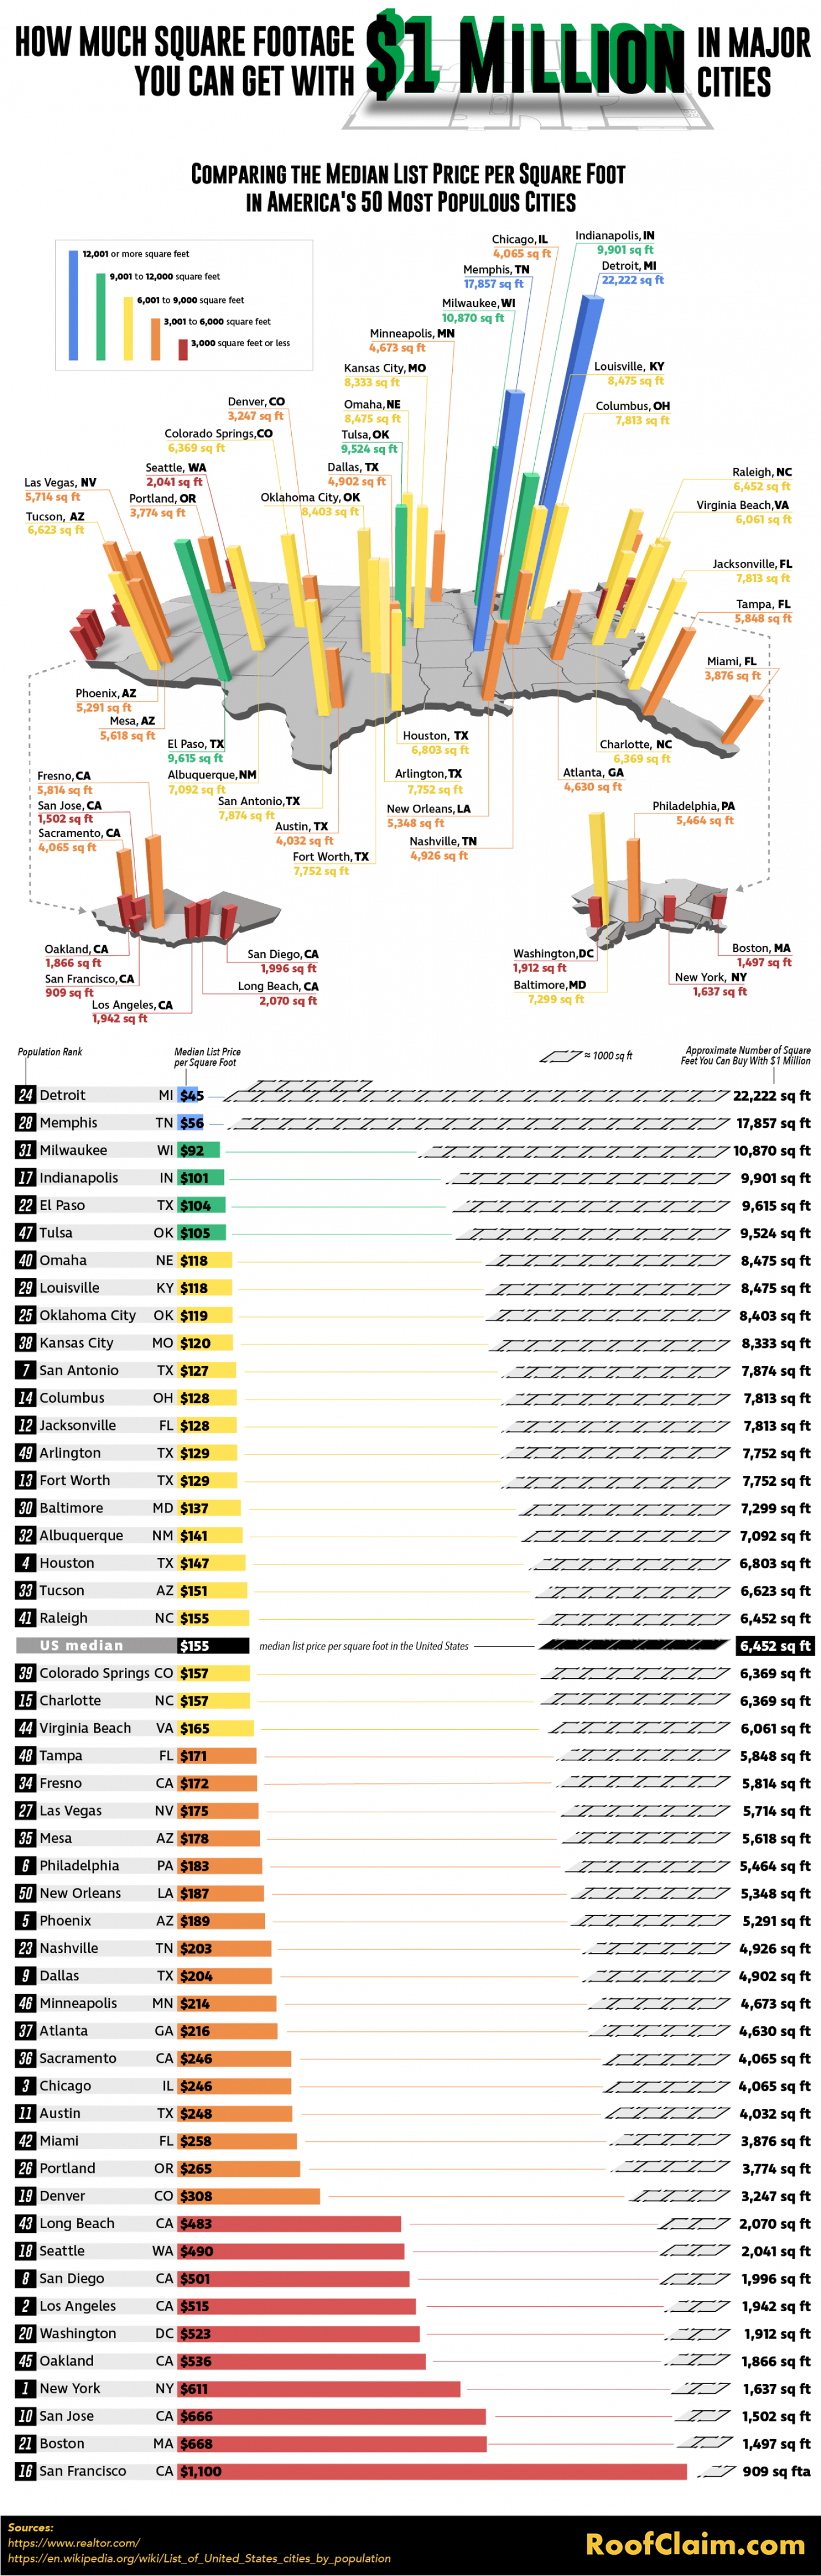 How Much Square Footage You Can Get for $1 Million in Major Cities Infographic